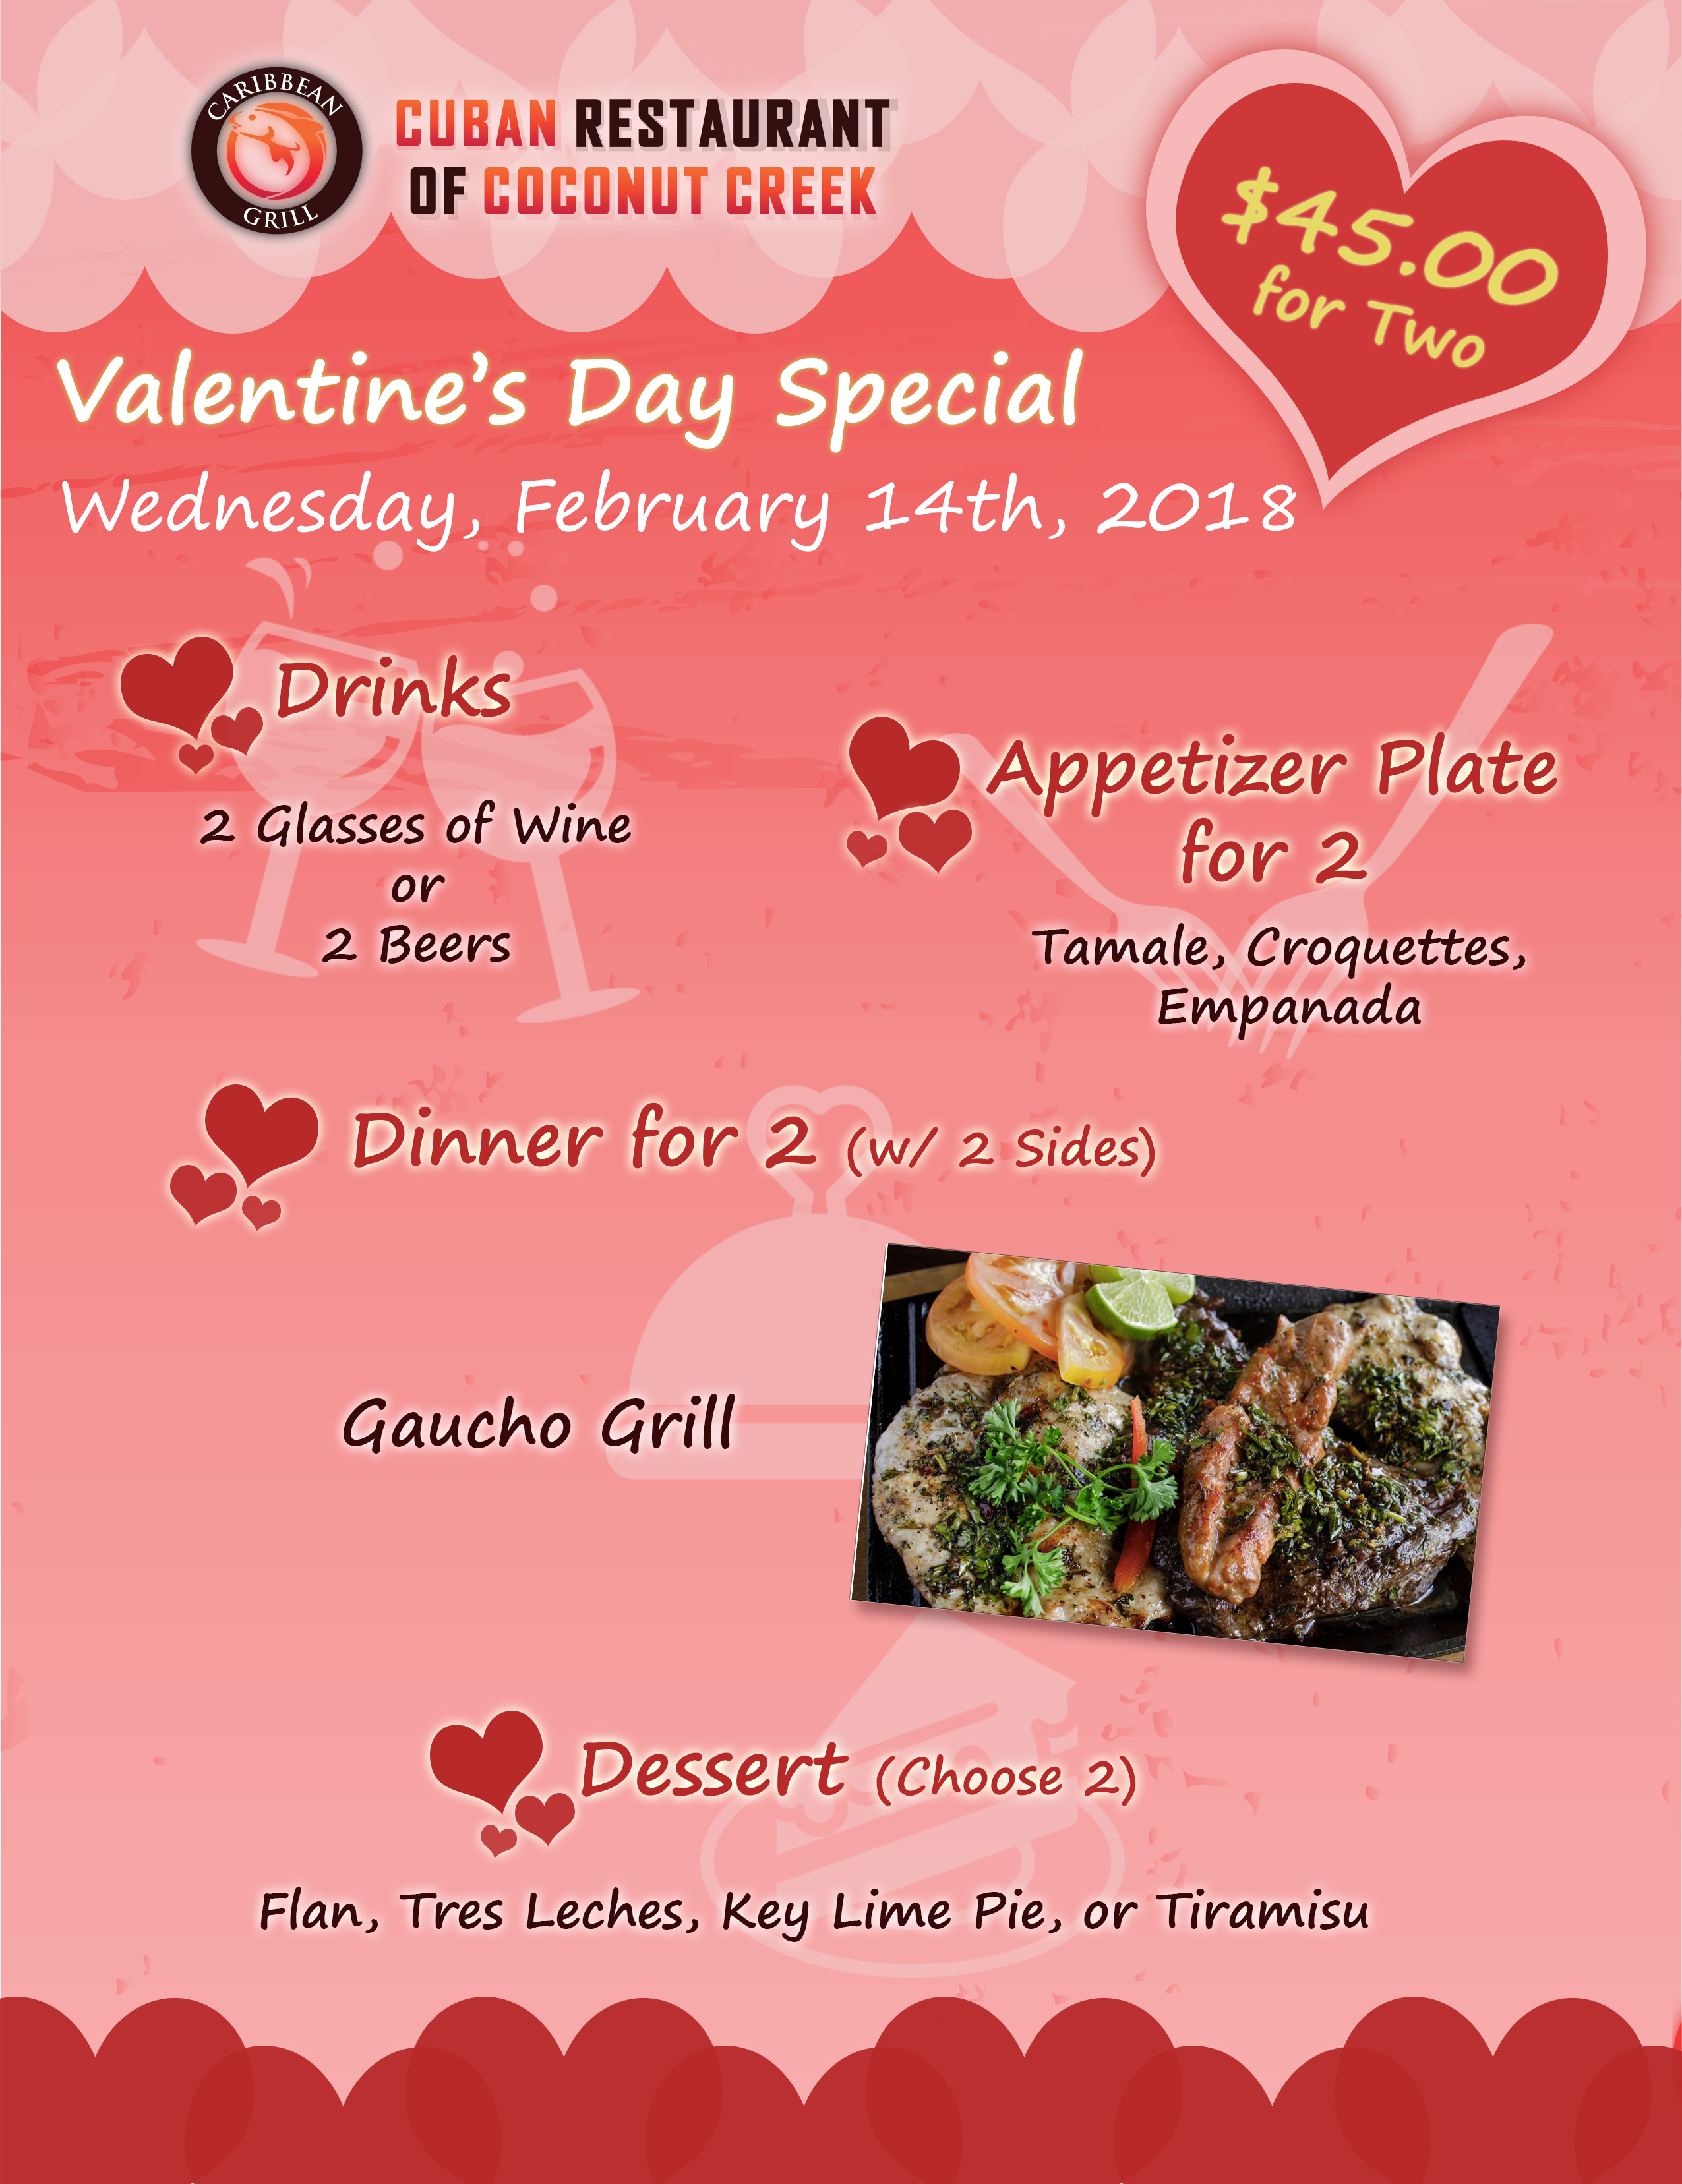 Caribbean Grill Cuban Restaurant of Coconut Creek Valentine's Day Special 2018